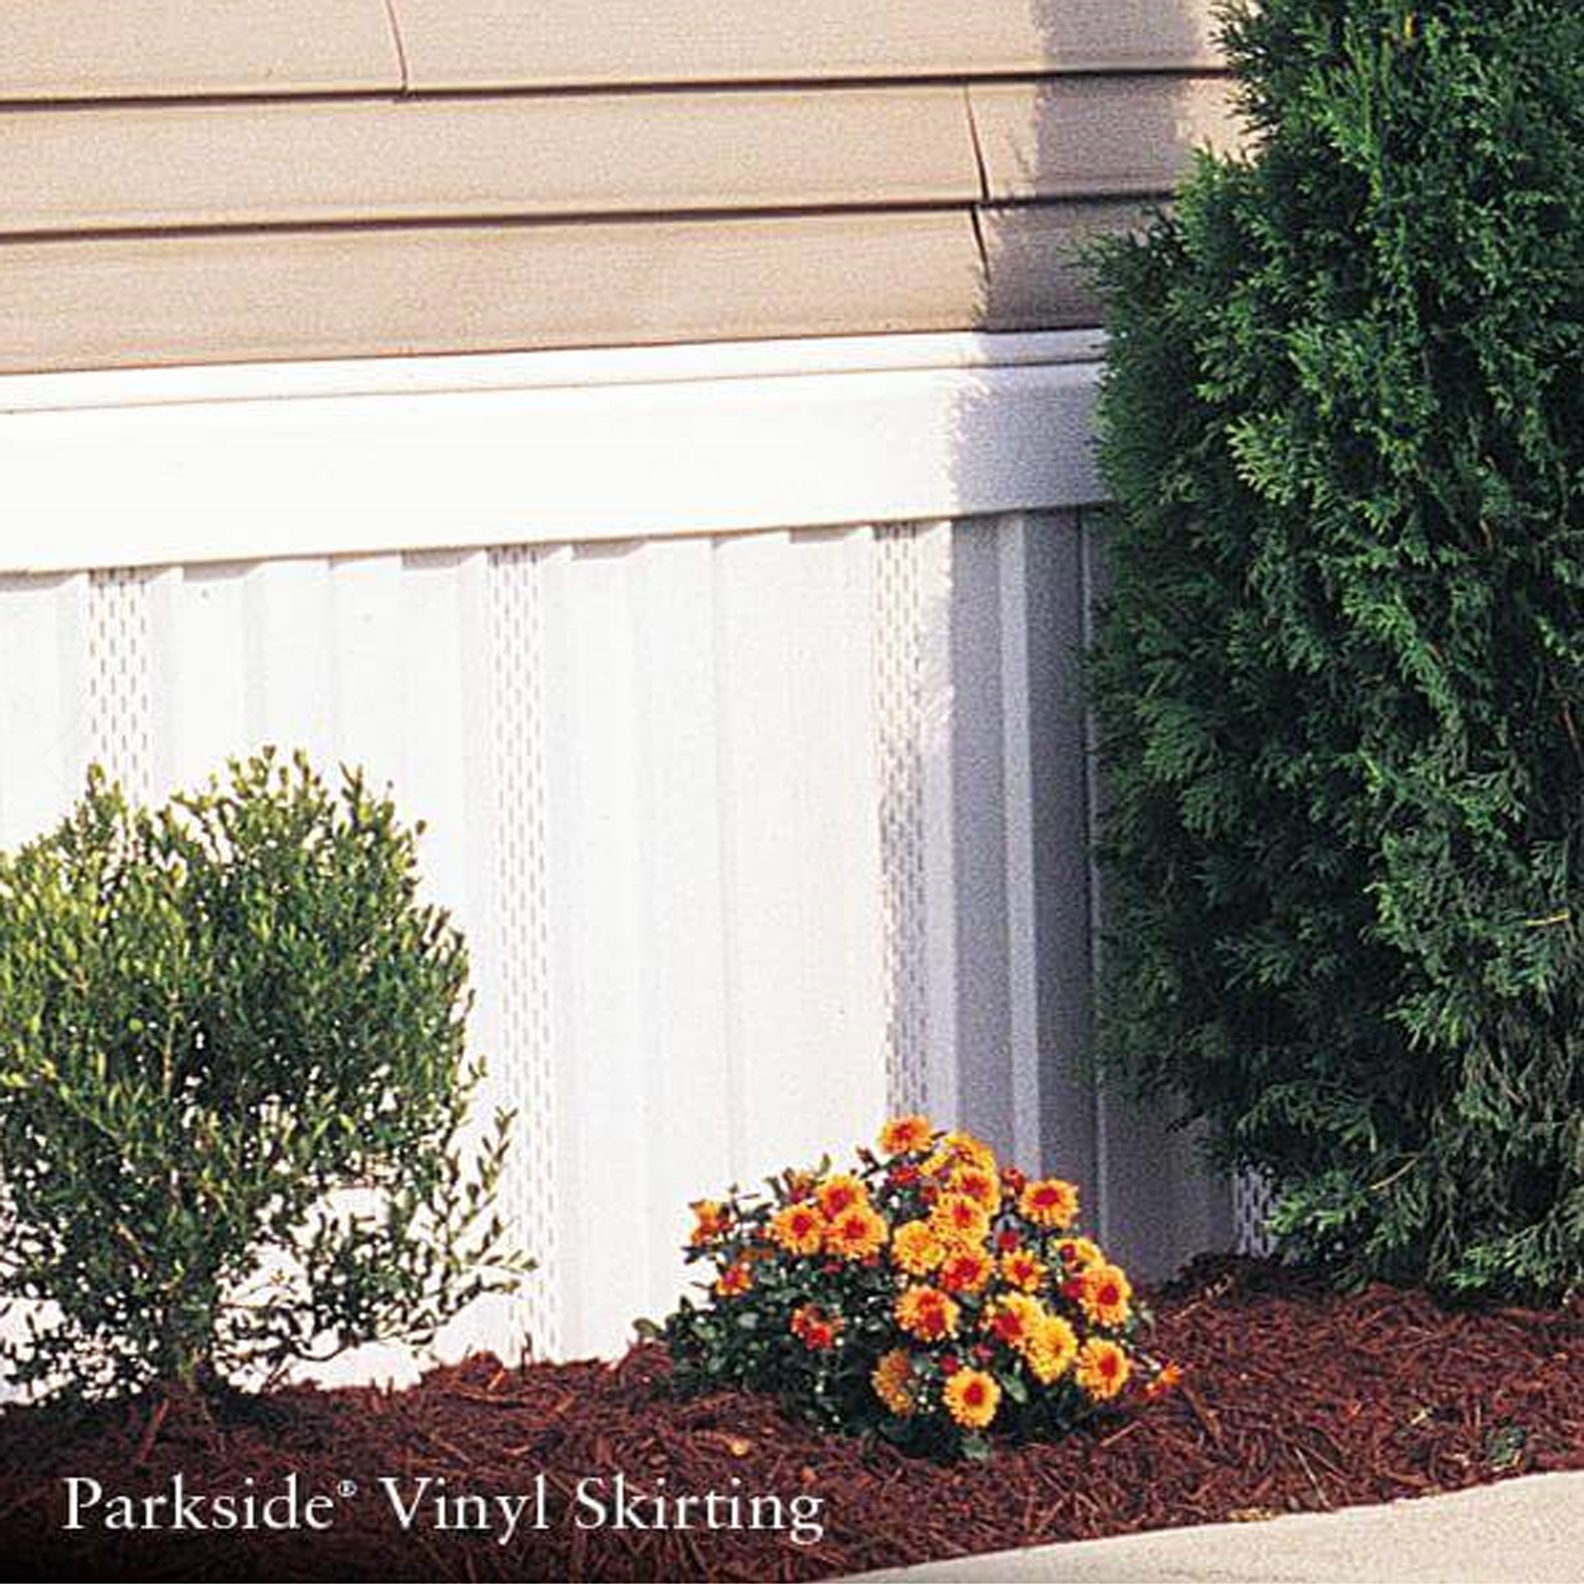 GP PARKSIDE VINYL SKIRTING